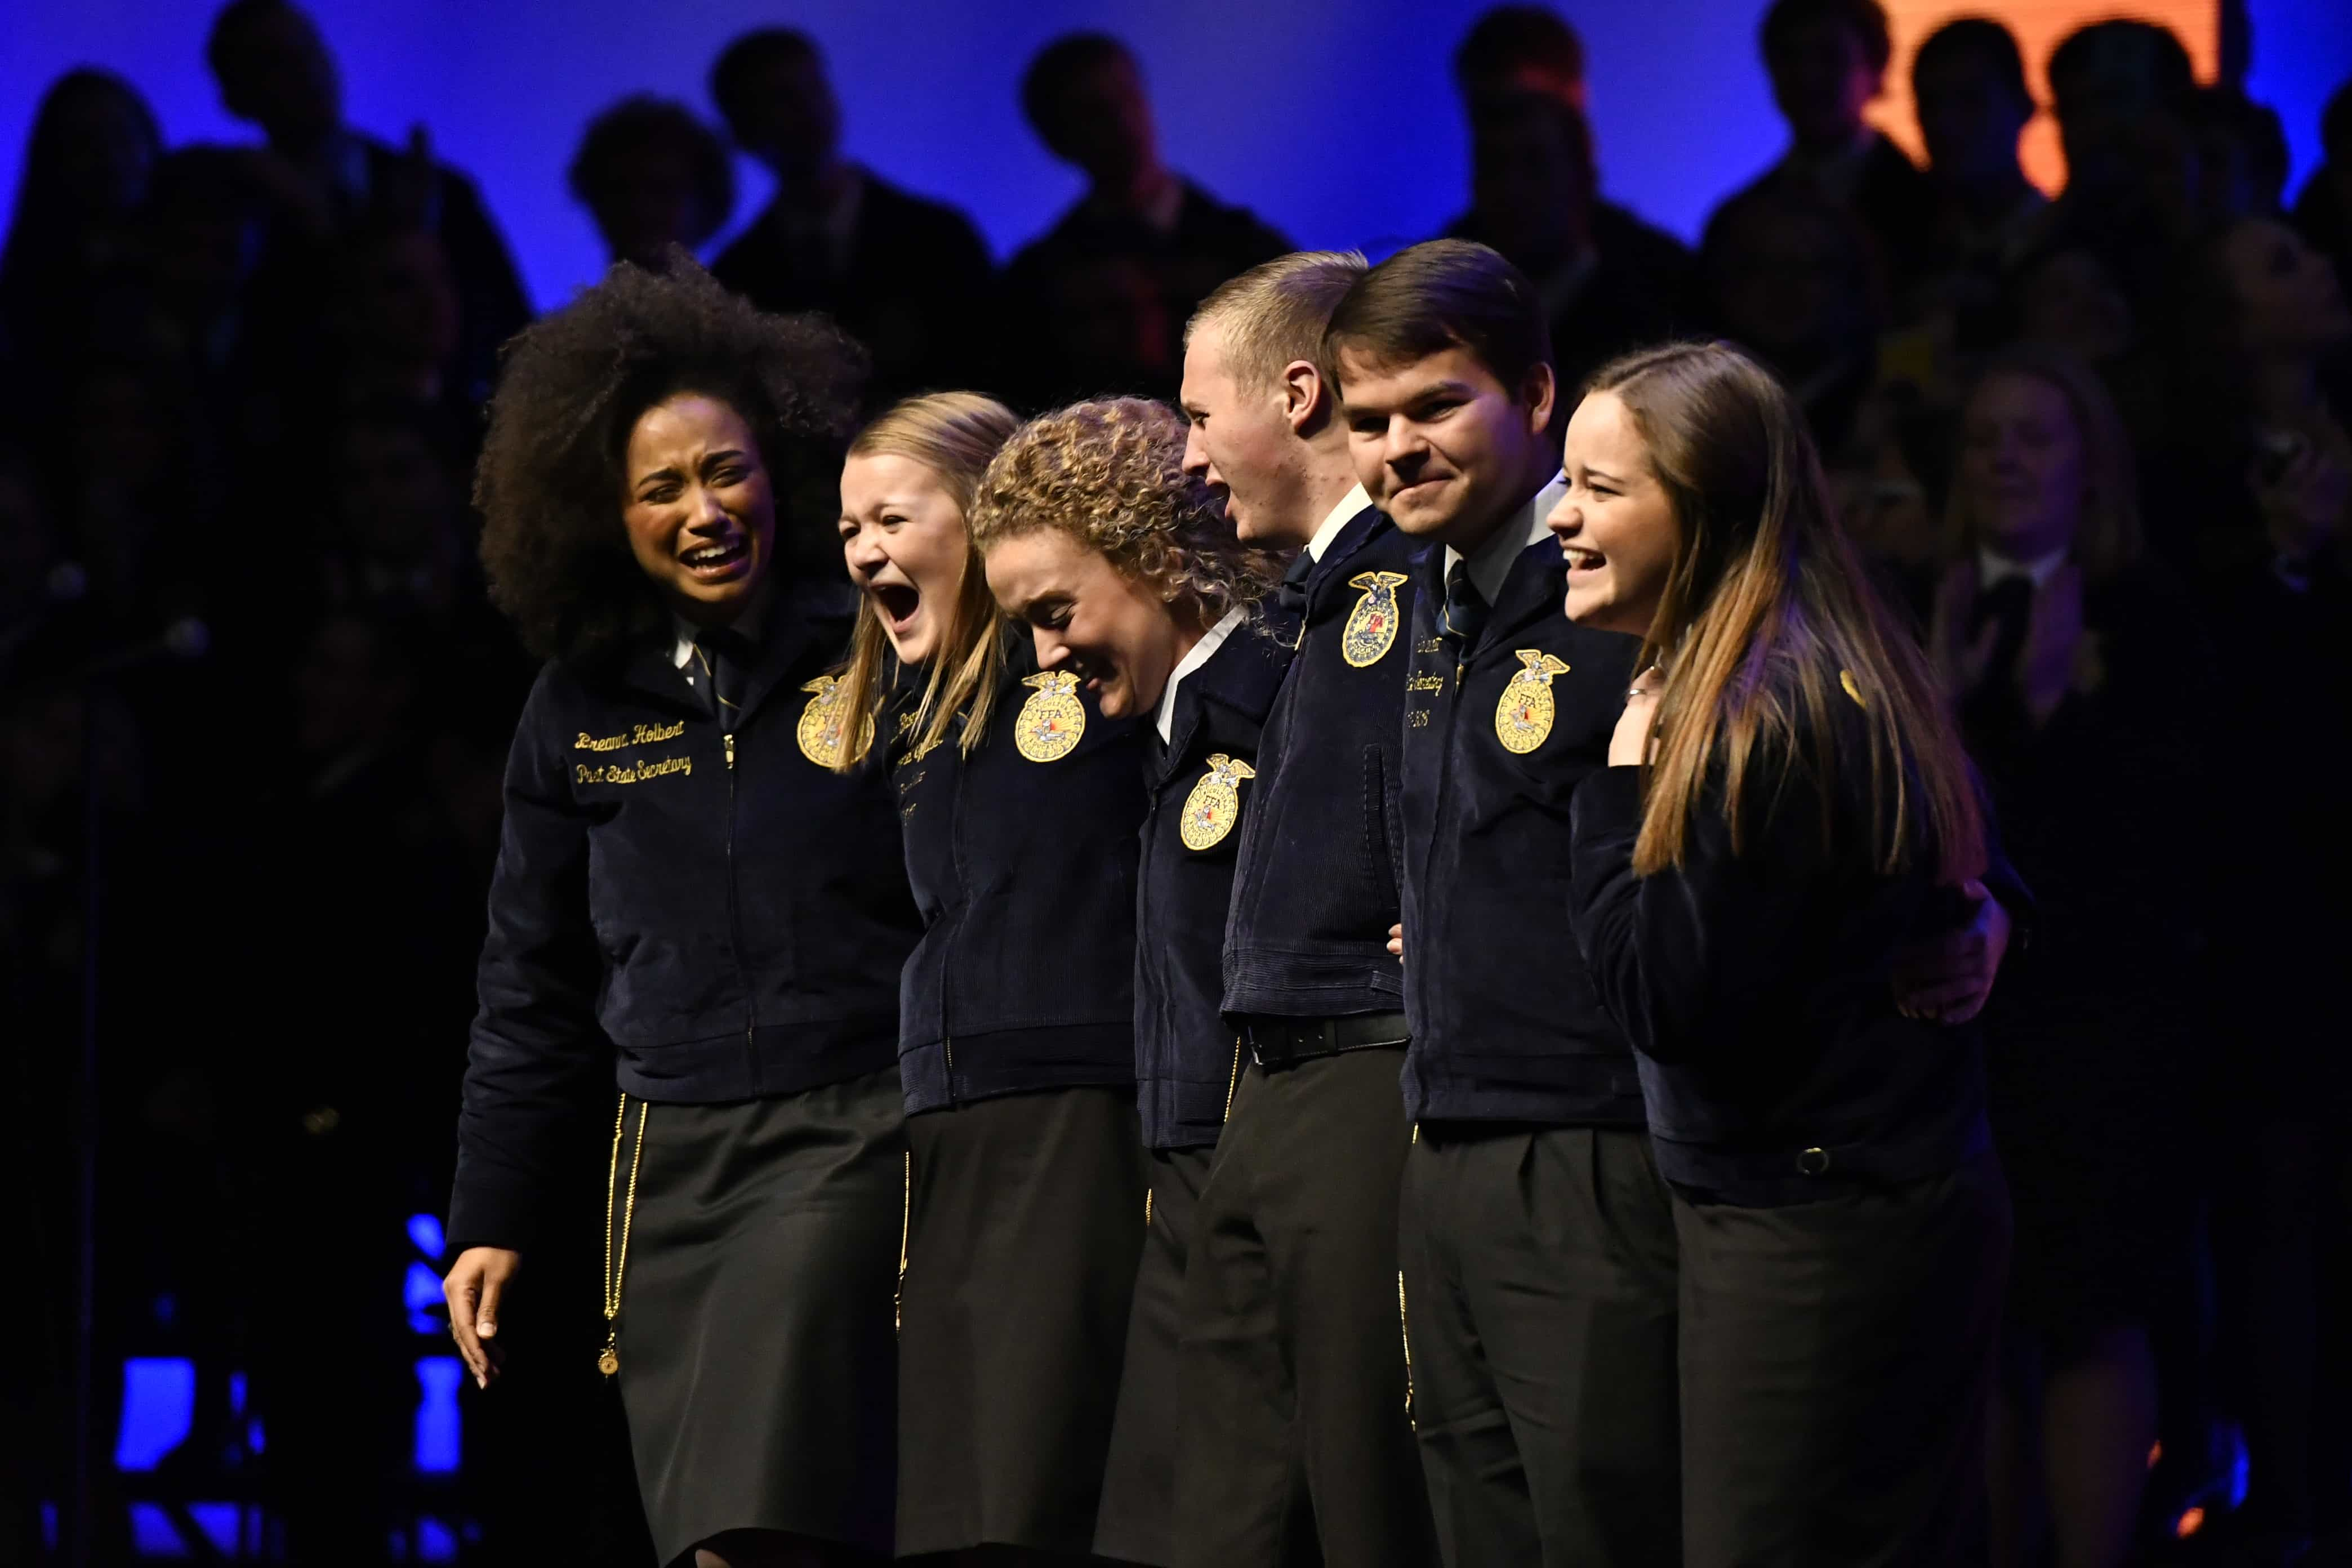 23 National Officer Candidates Advance to Phase 2 of Selection Process